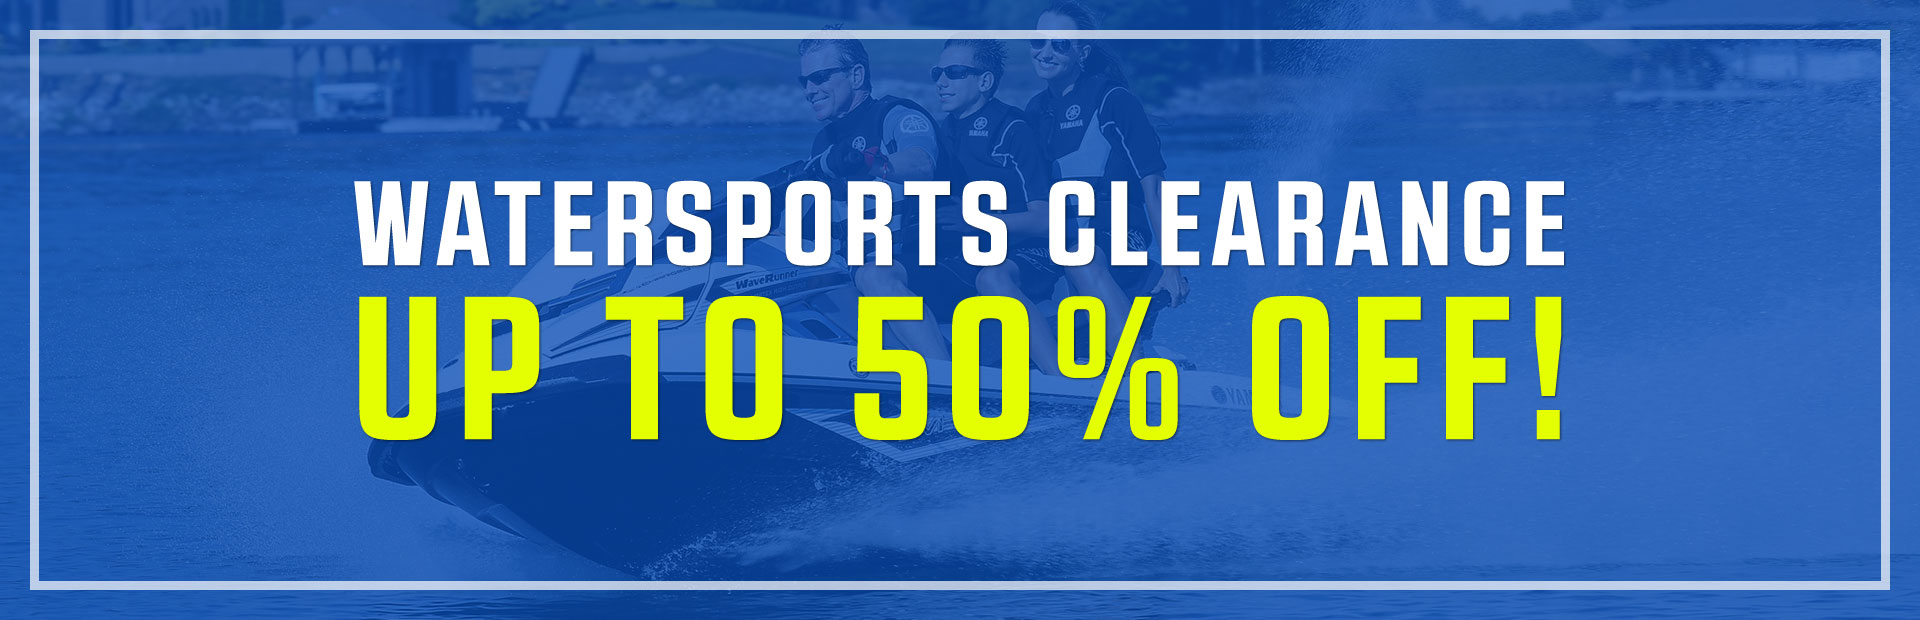 Watersports Clearance: Get up to 50% off!